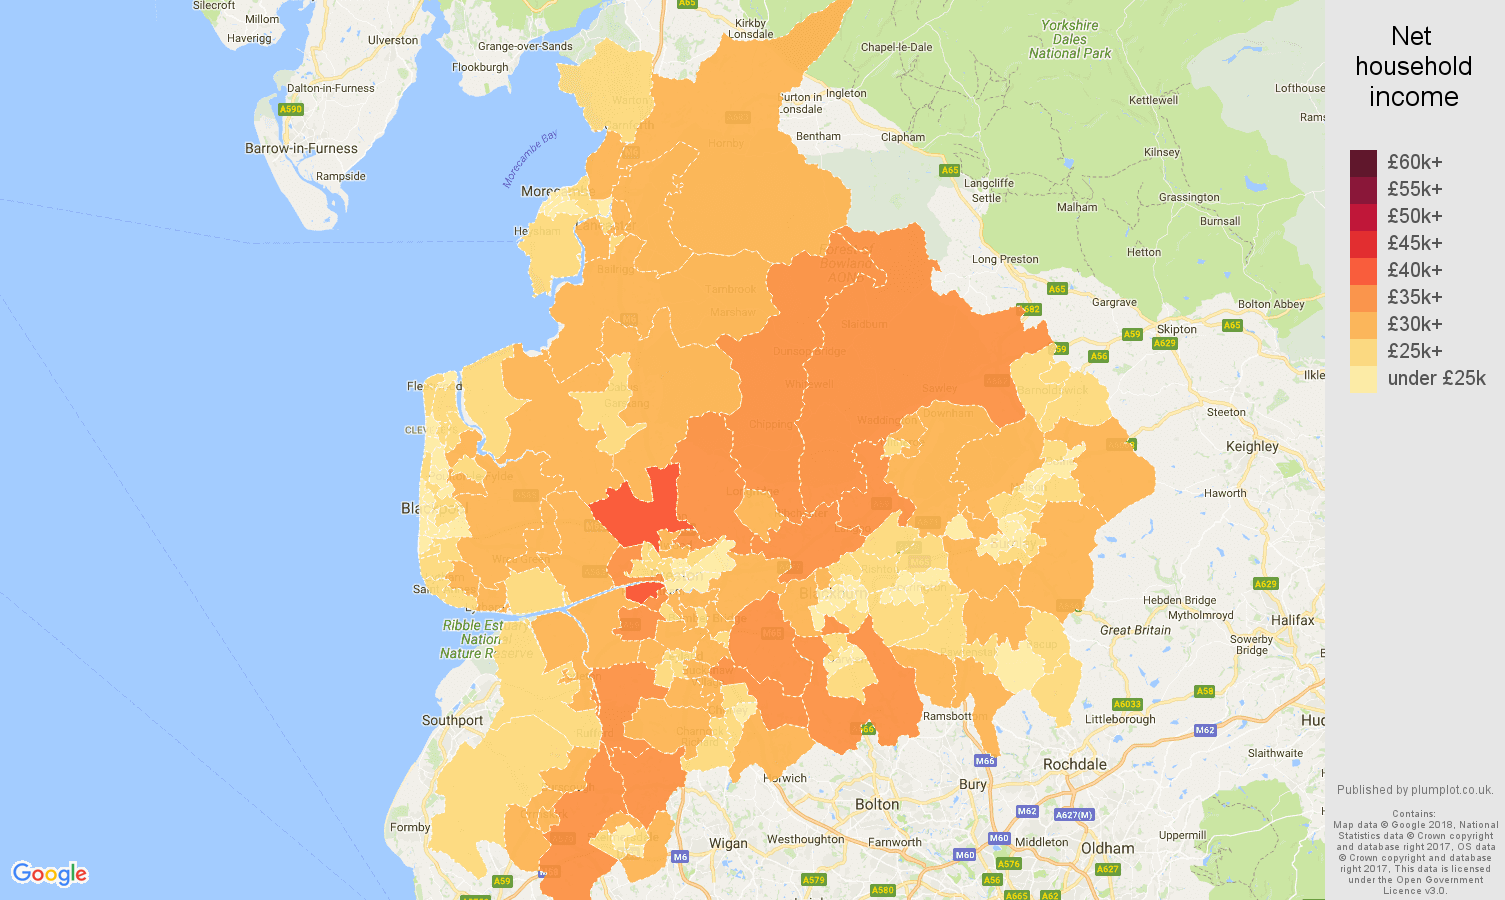 Lancashire net household income map